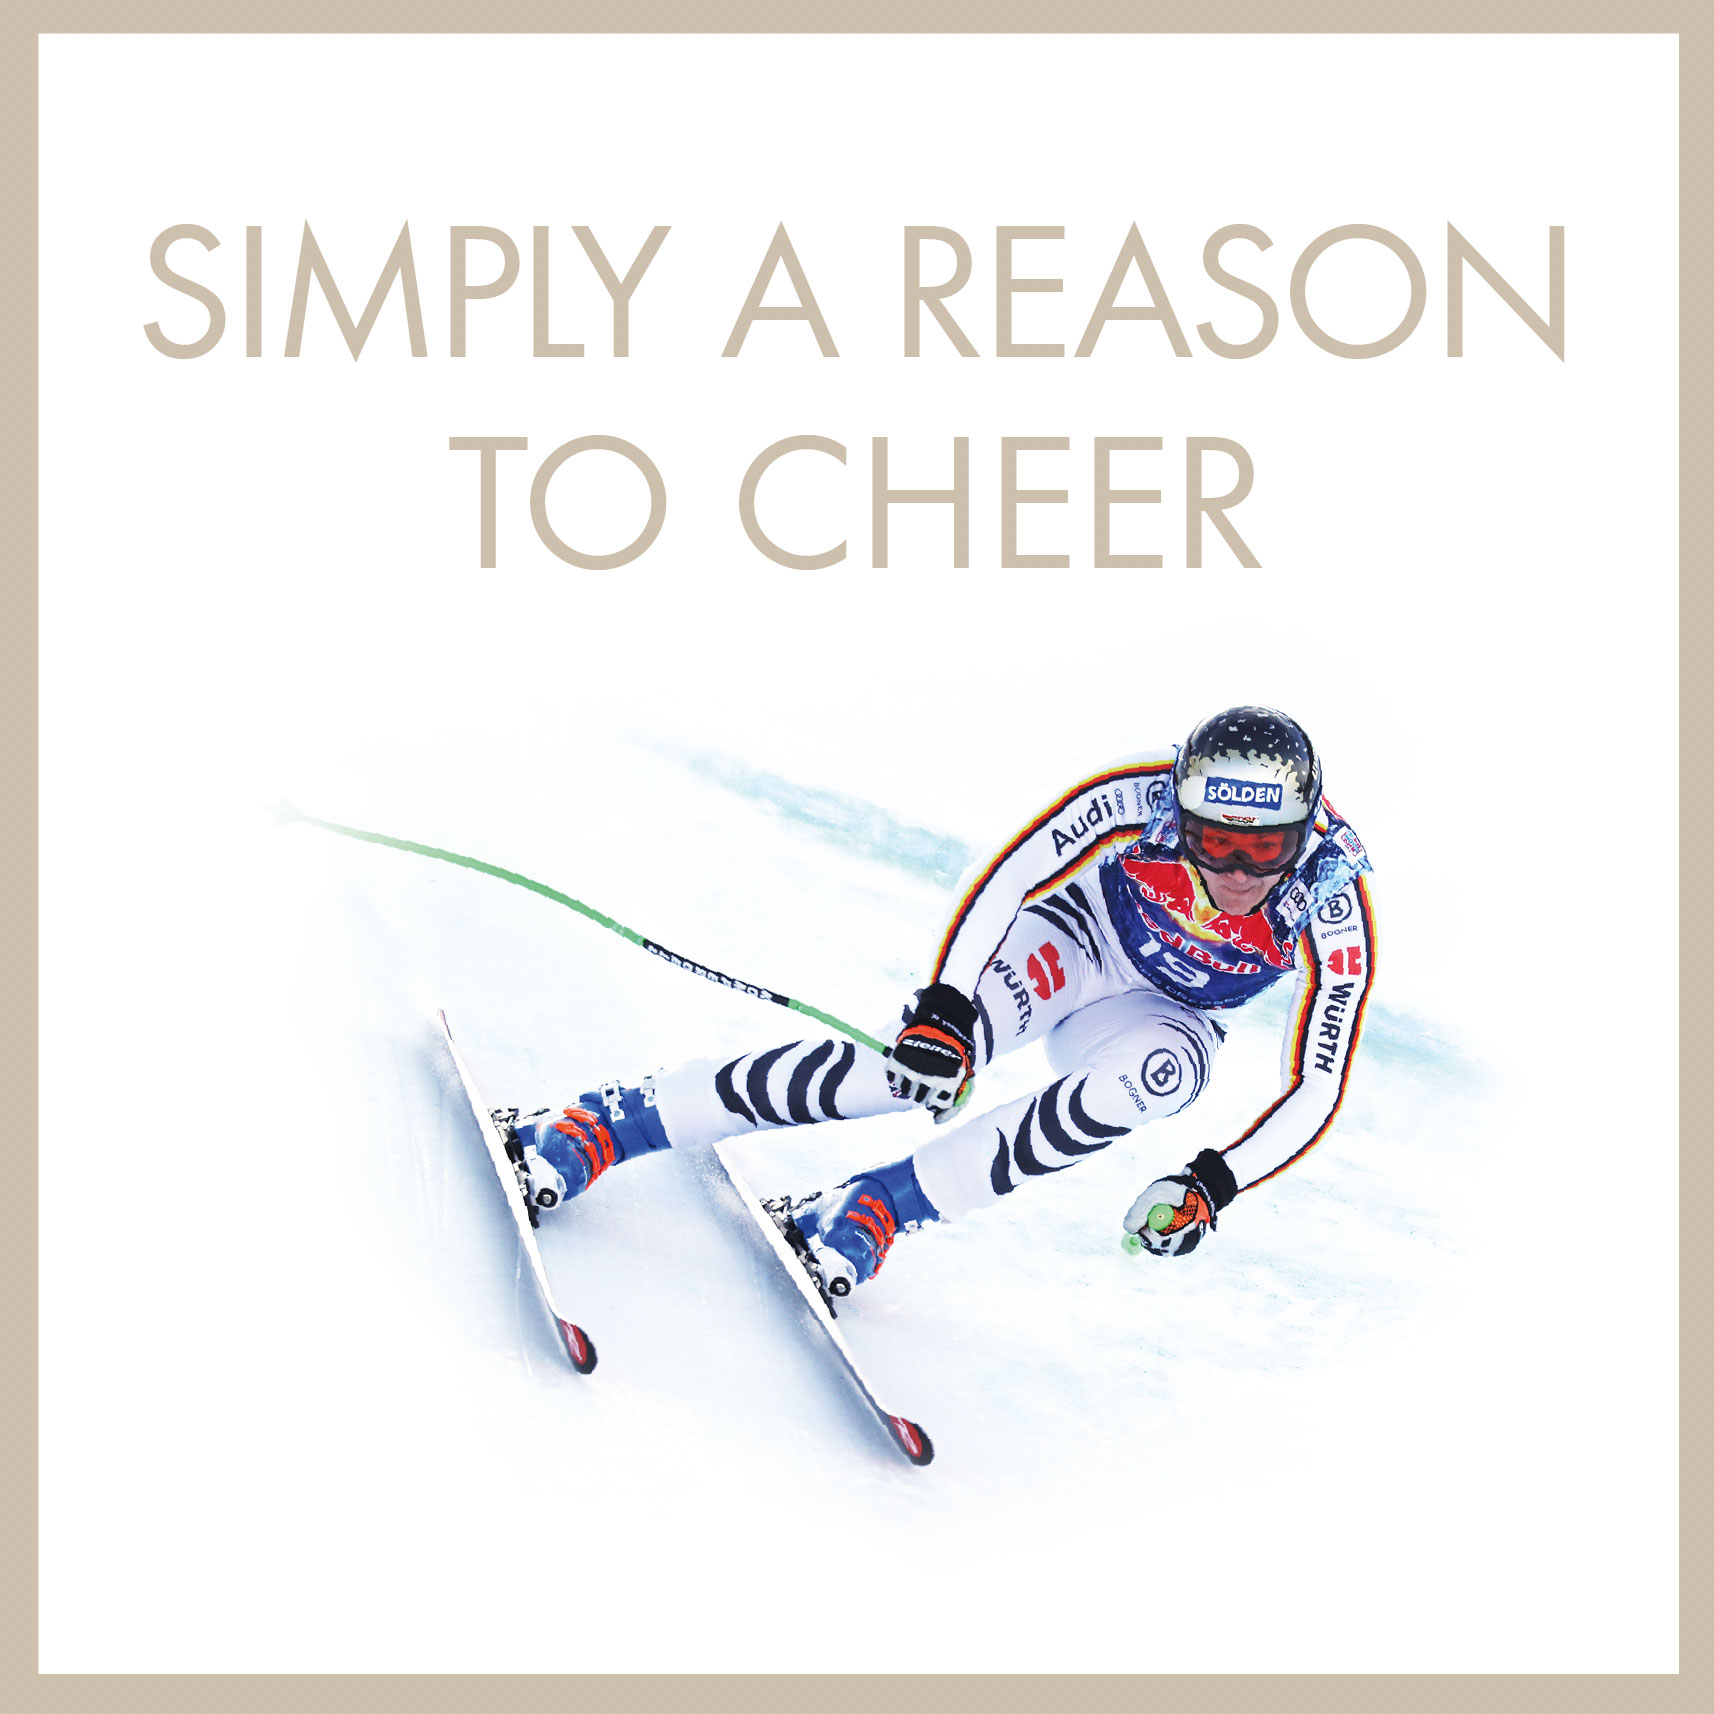 simply a reason to cheer